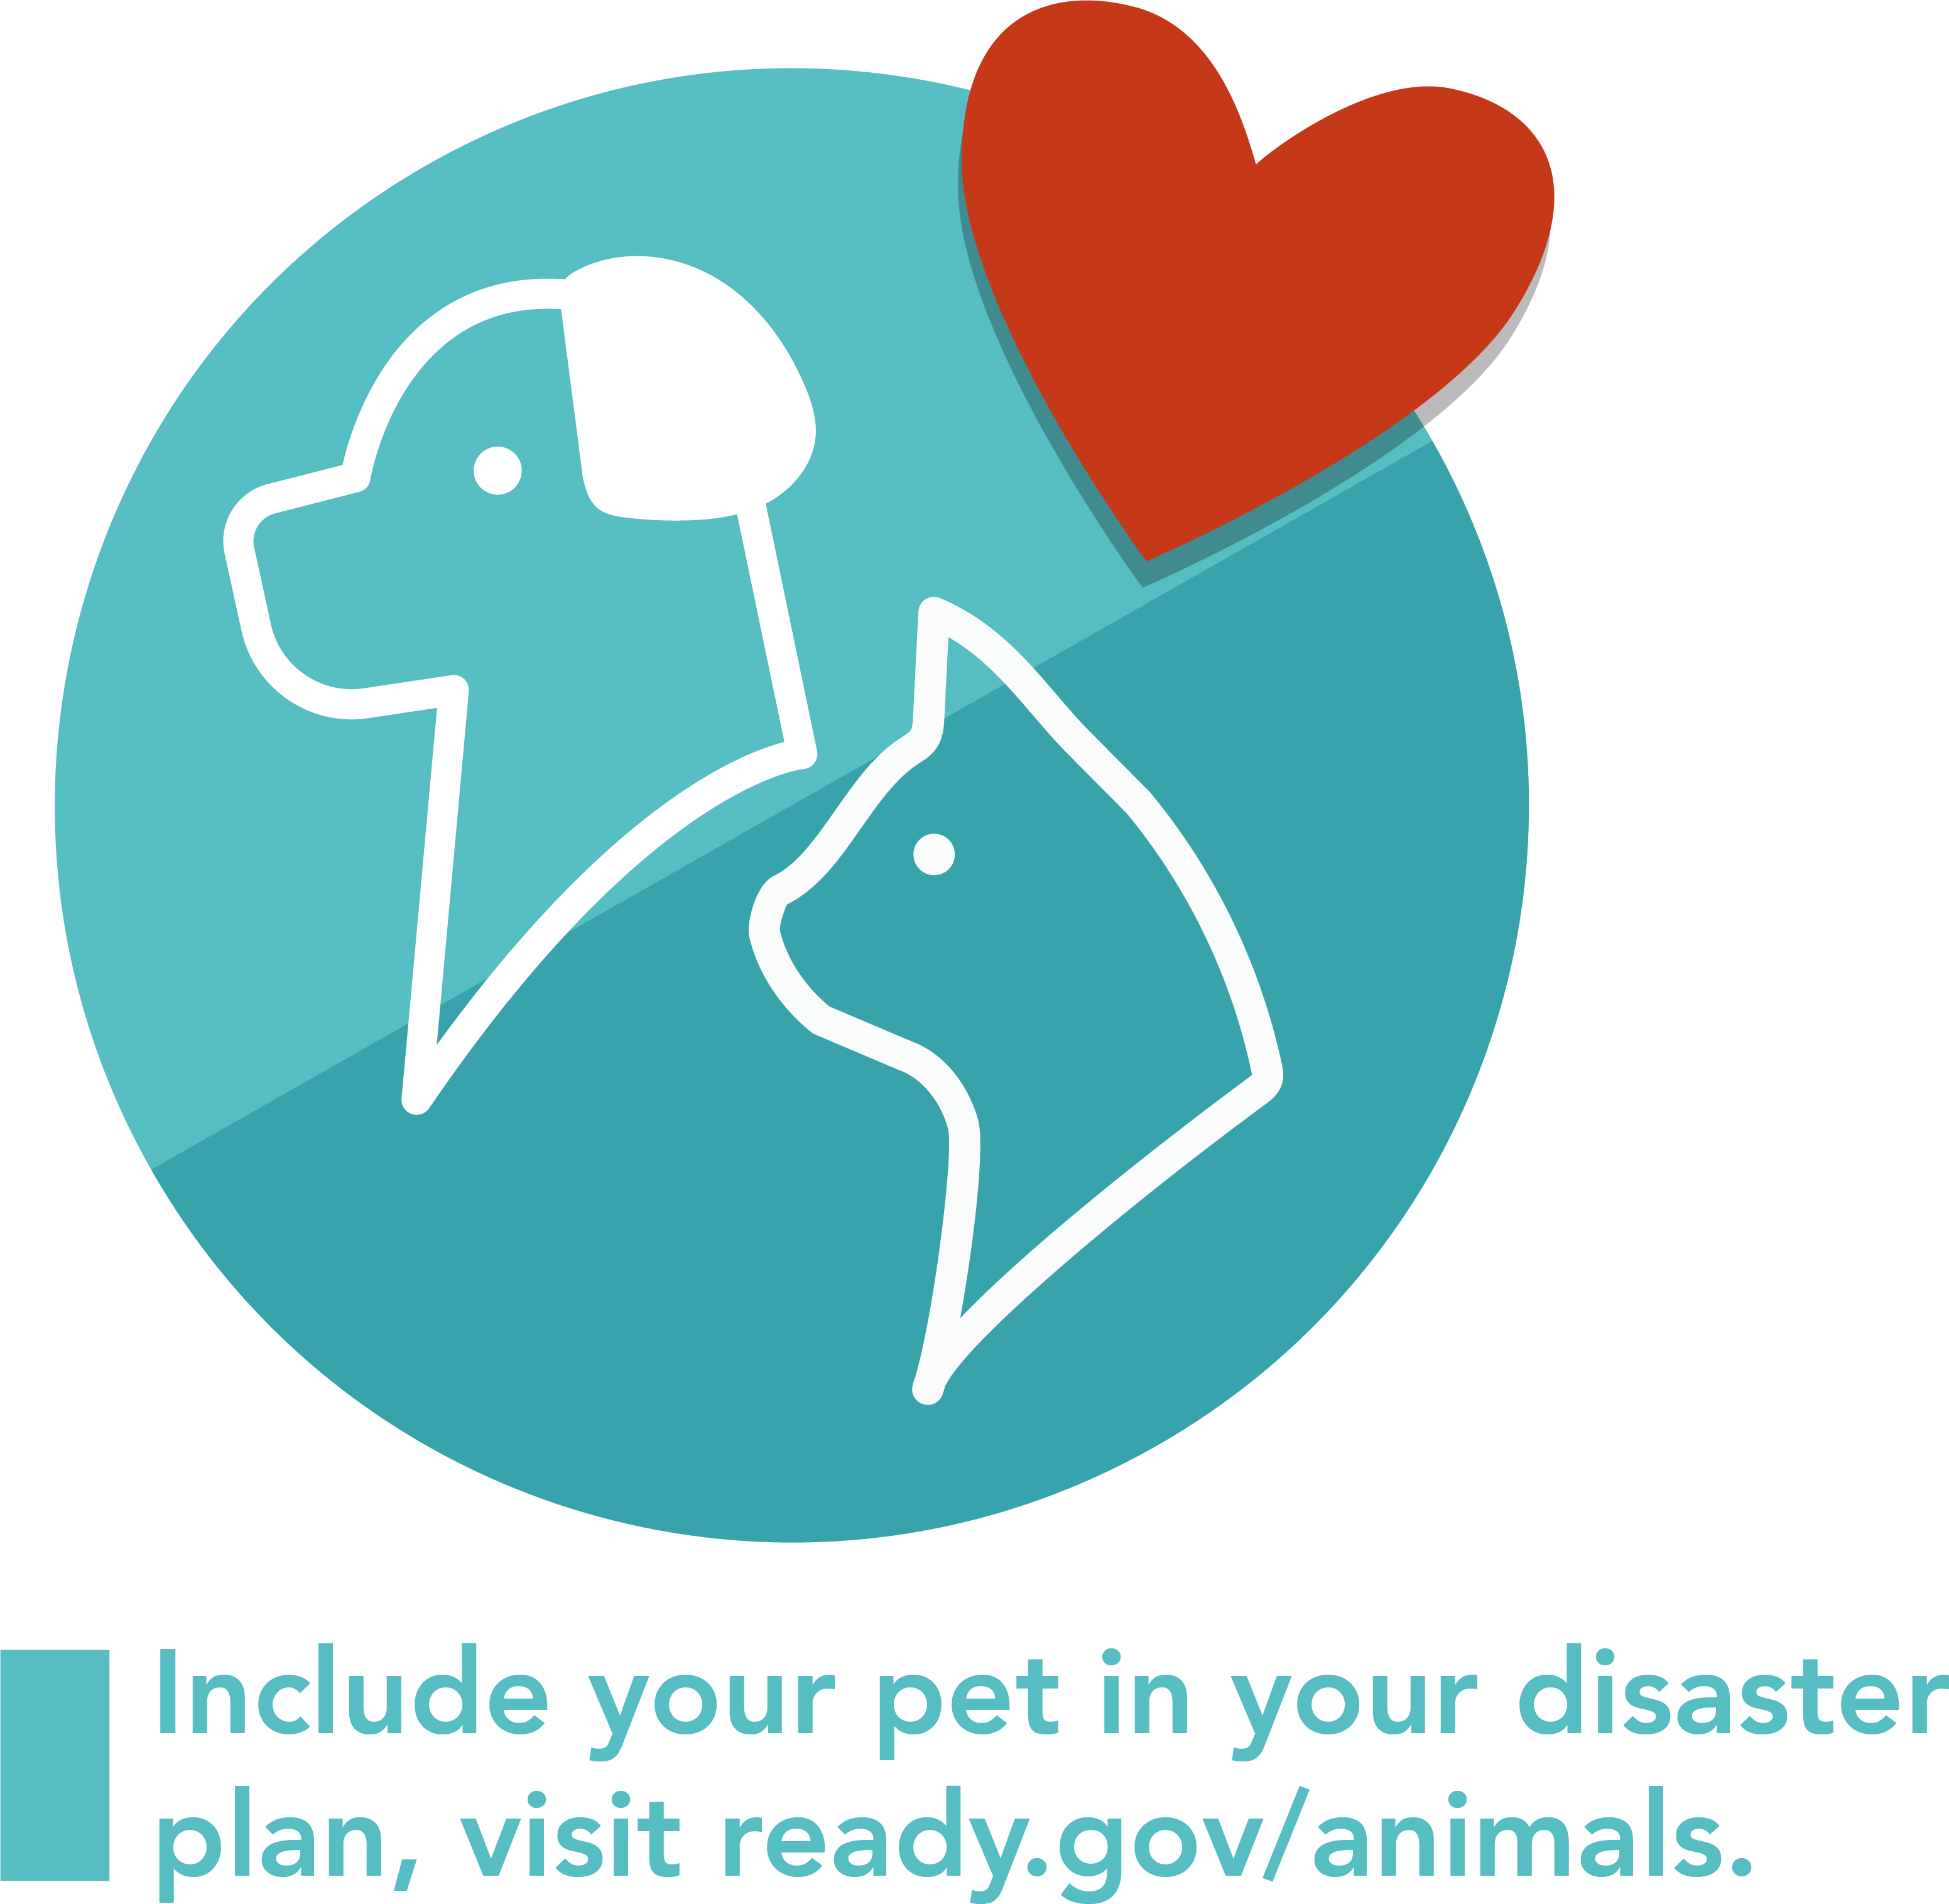 A graphic of an icon of pets